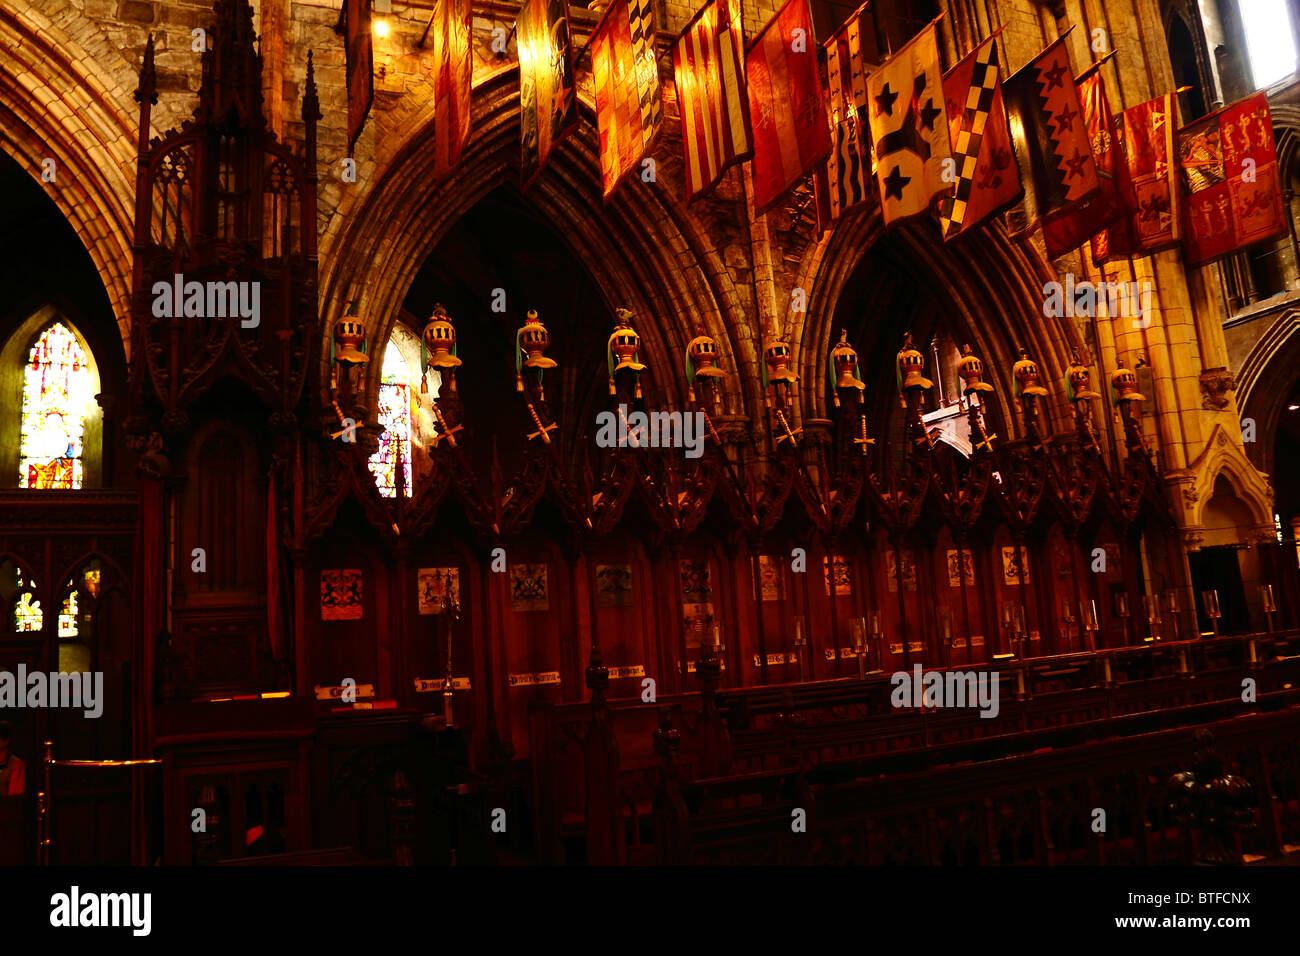 Banners and coats of arms of the knights displayed in the Choir of the Saint Patrick's Cathedral in Dublin, - Stock Image